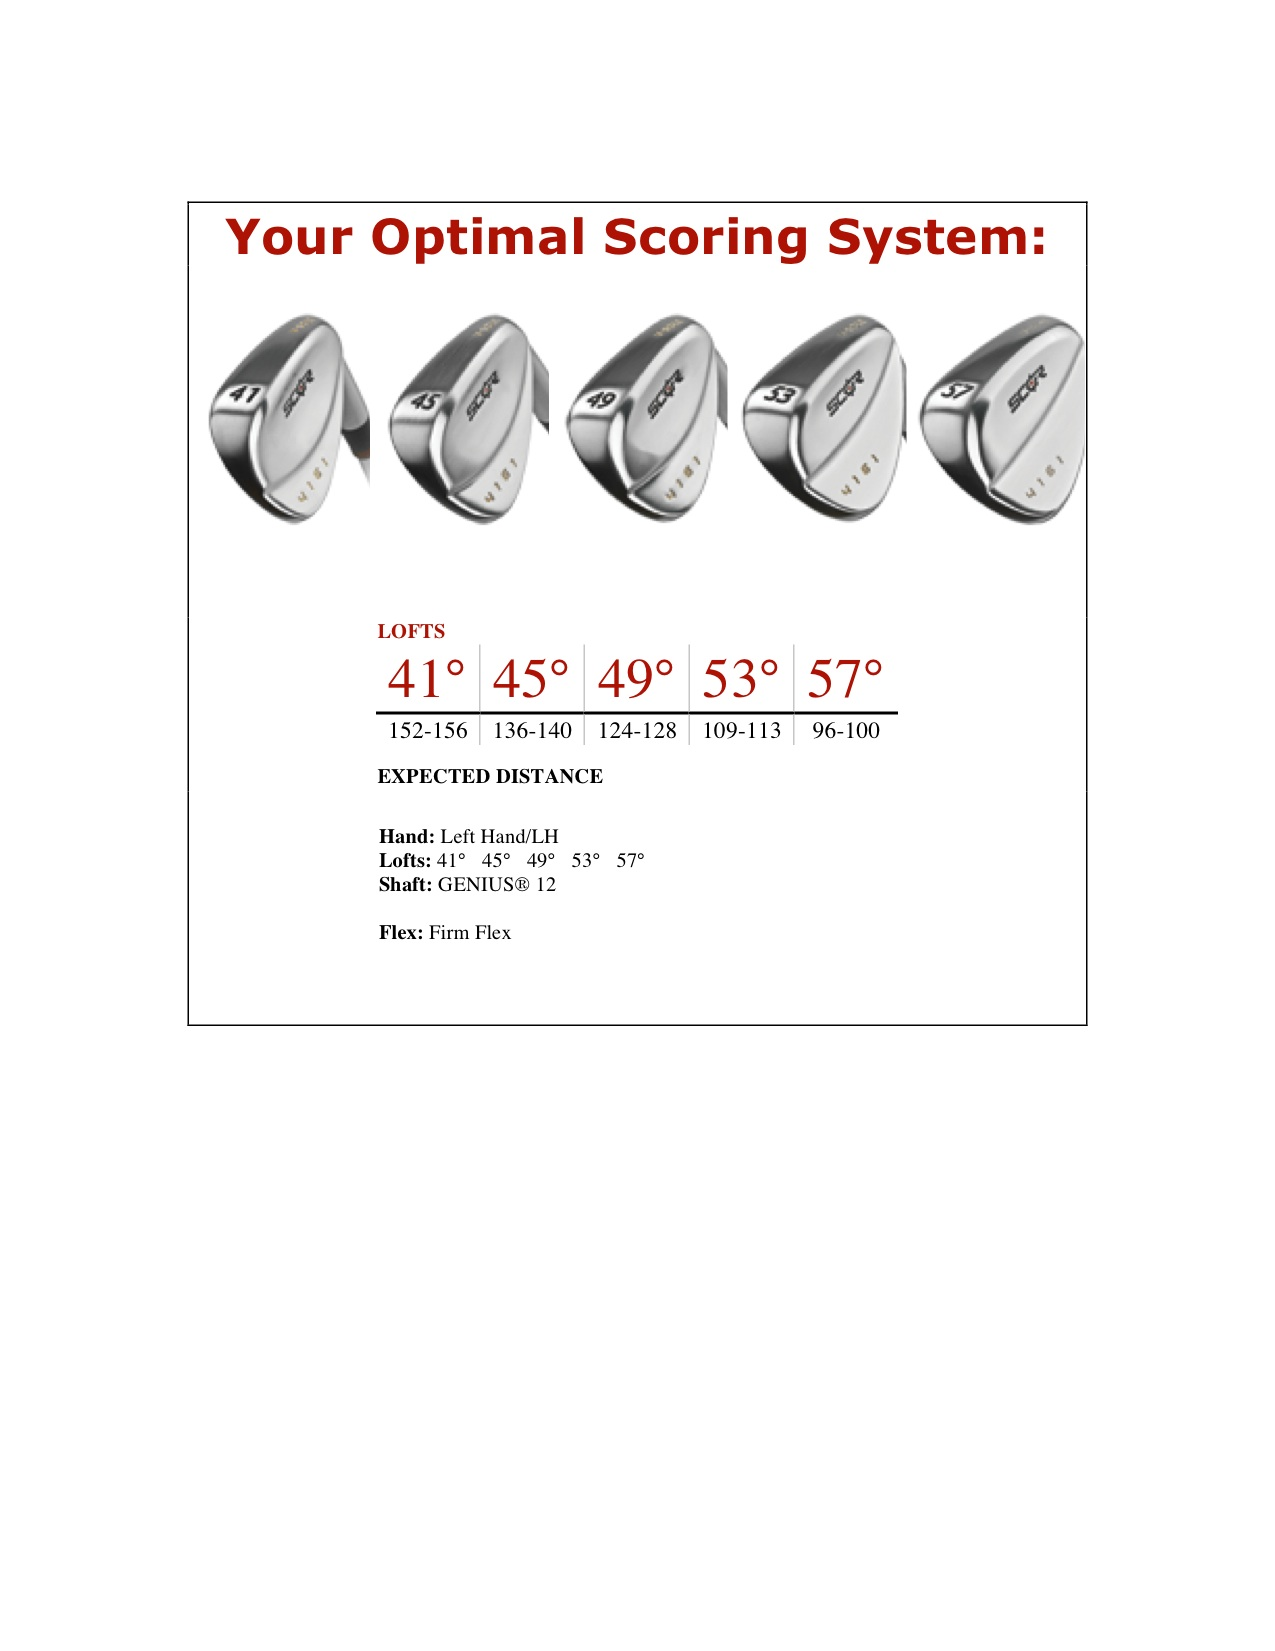 Your Optimal Scoring System (1).jpg